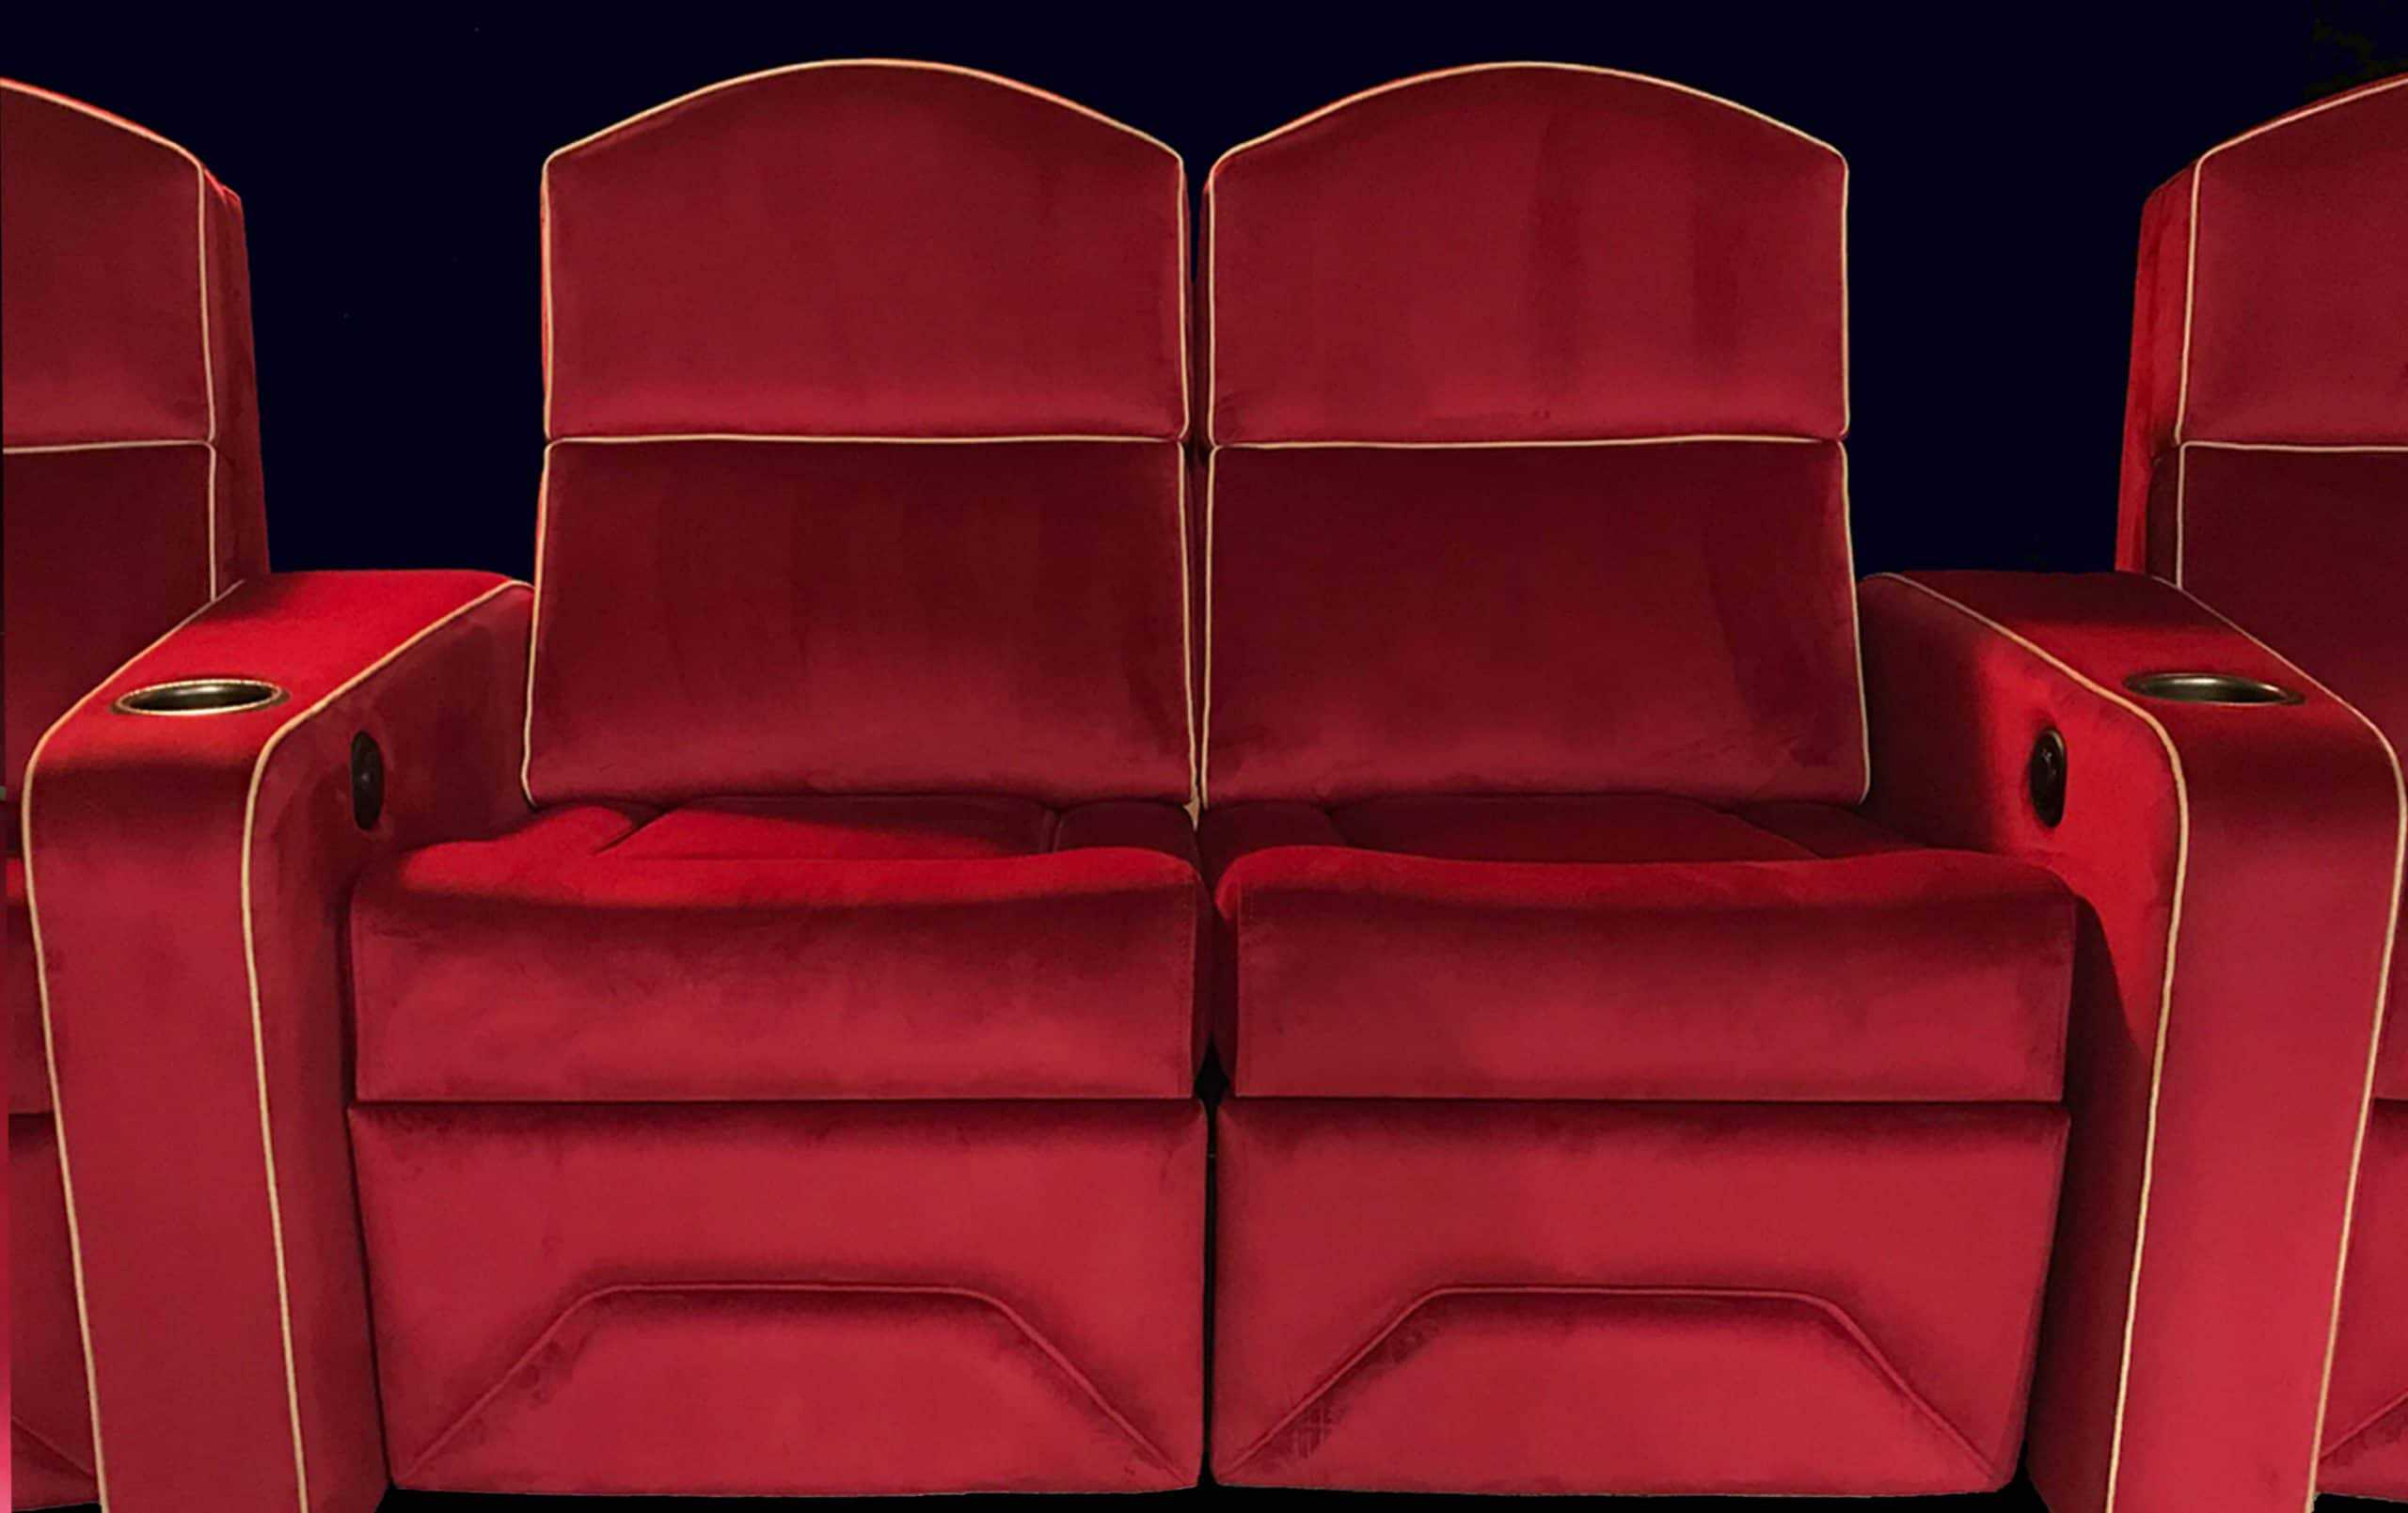 home_theater recliner seats d3_red_(2)